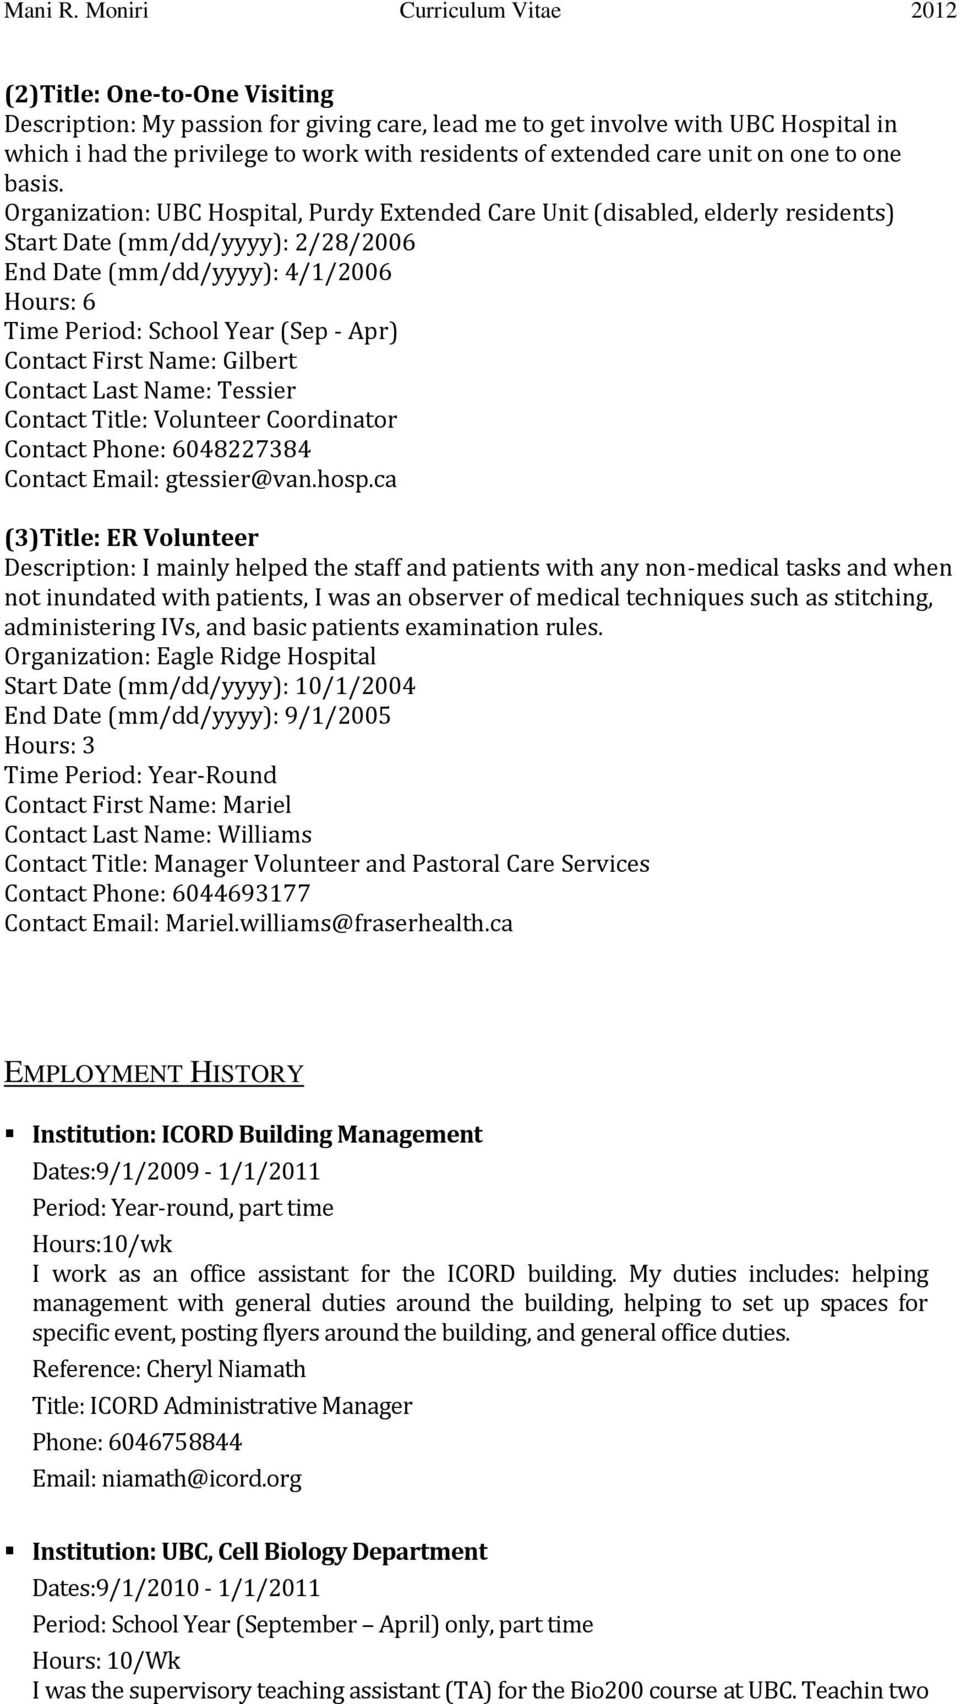 Organization: UBC Hospital, Purdy Extended Care Unit (disabled, elderly residents) Start Date (mm/dd/yyyy): 2/28/2006 End Date (mm/dd/yyyy): 4/1/2006 Hours: 6 Contact First Name: Gilbert Contact Last